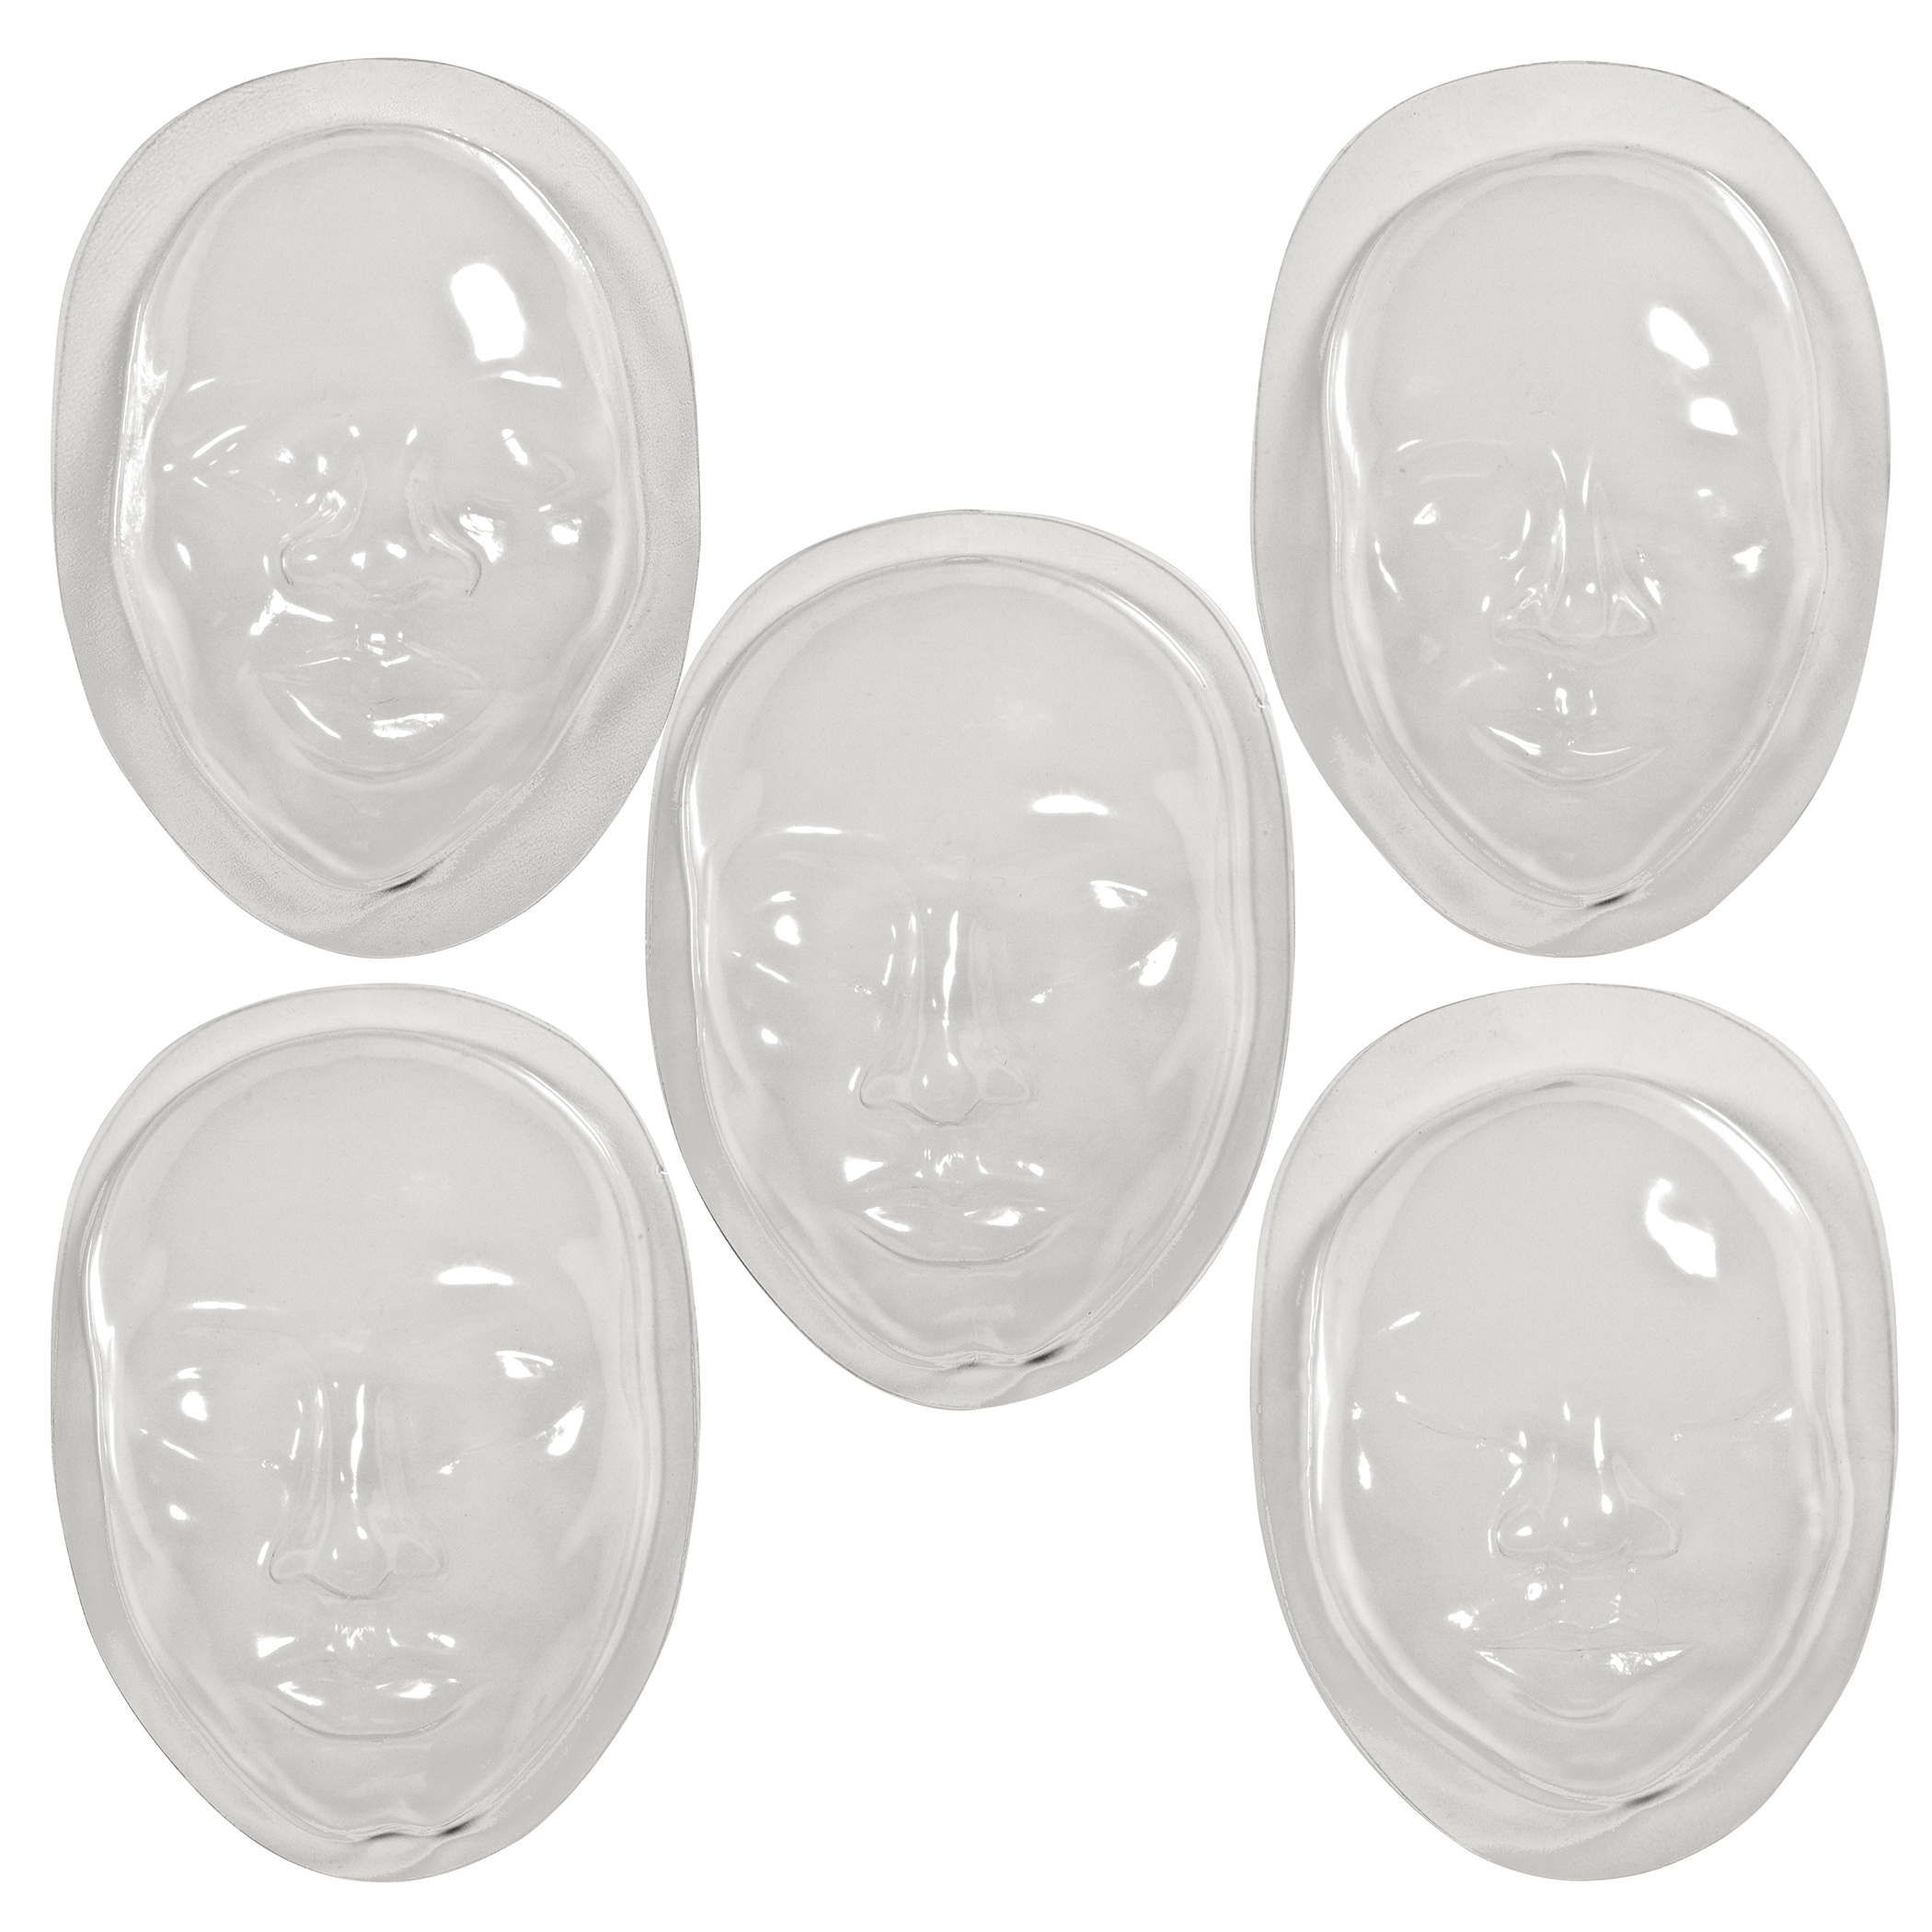 Roylco® Face Form, Pack of 10